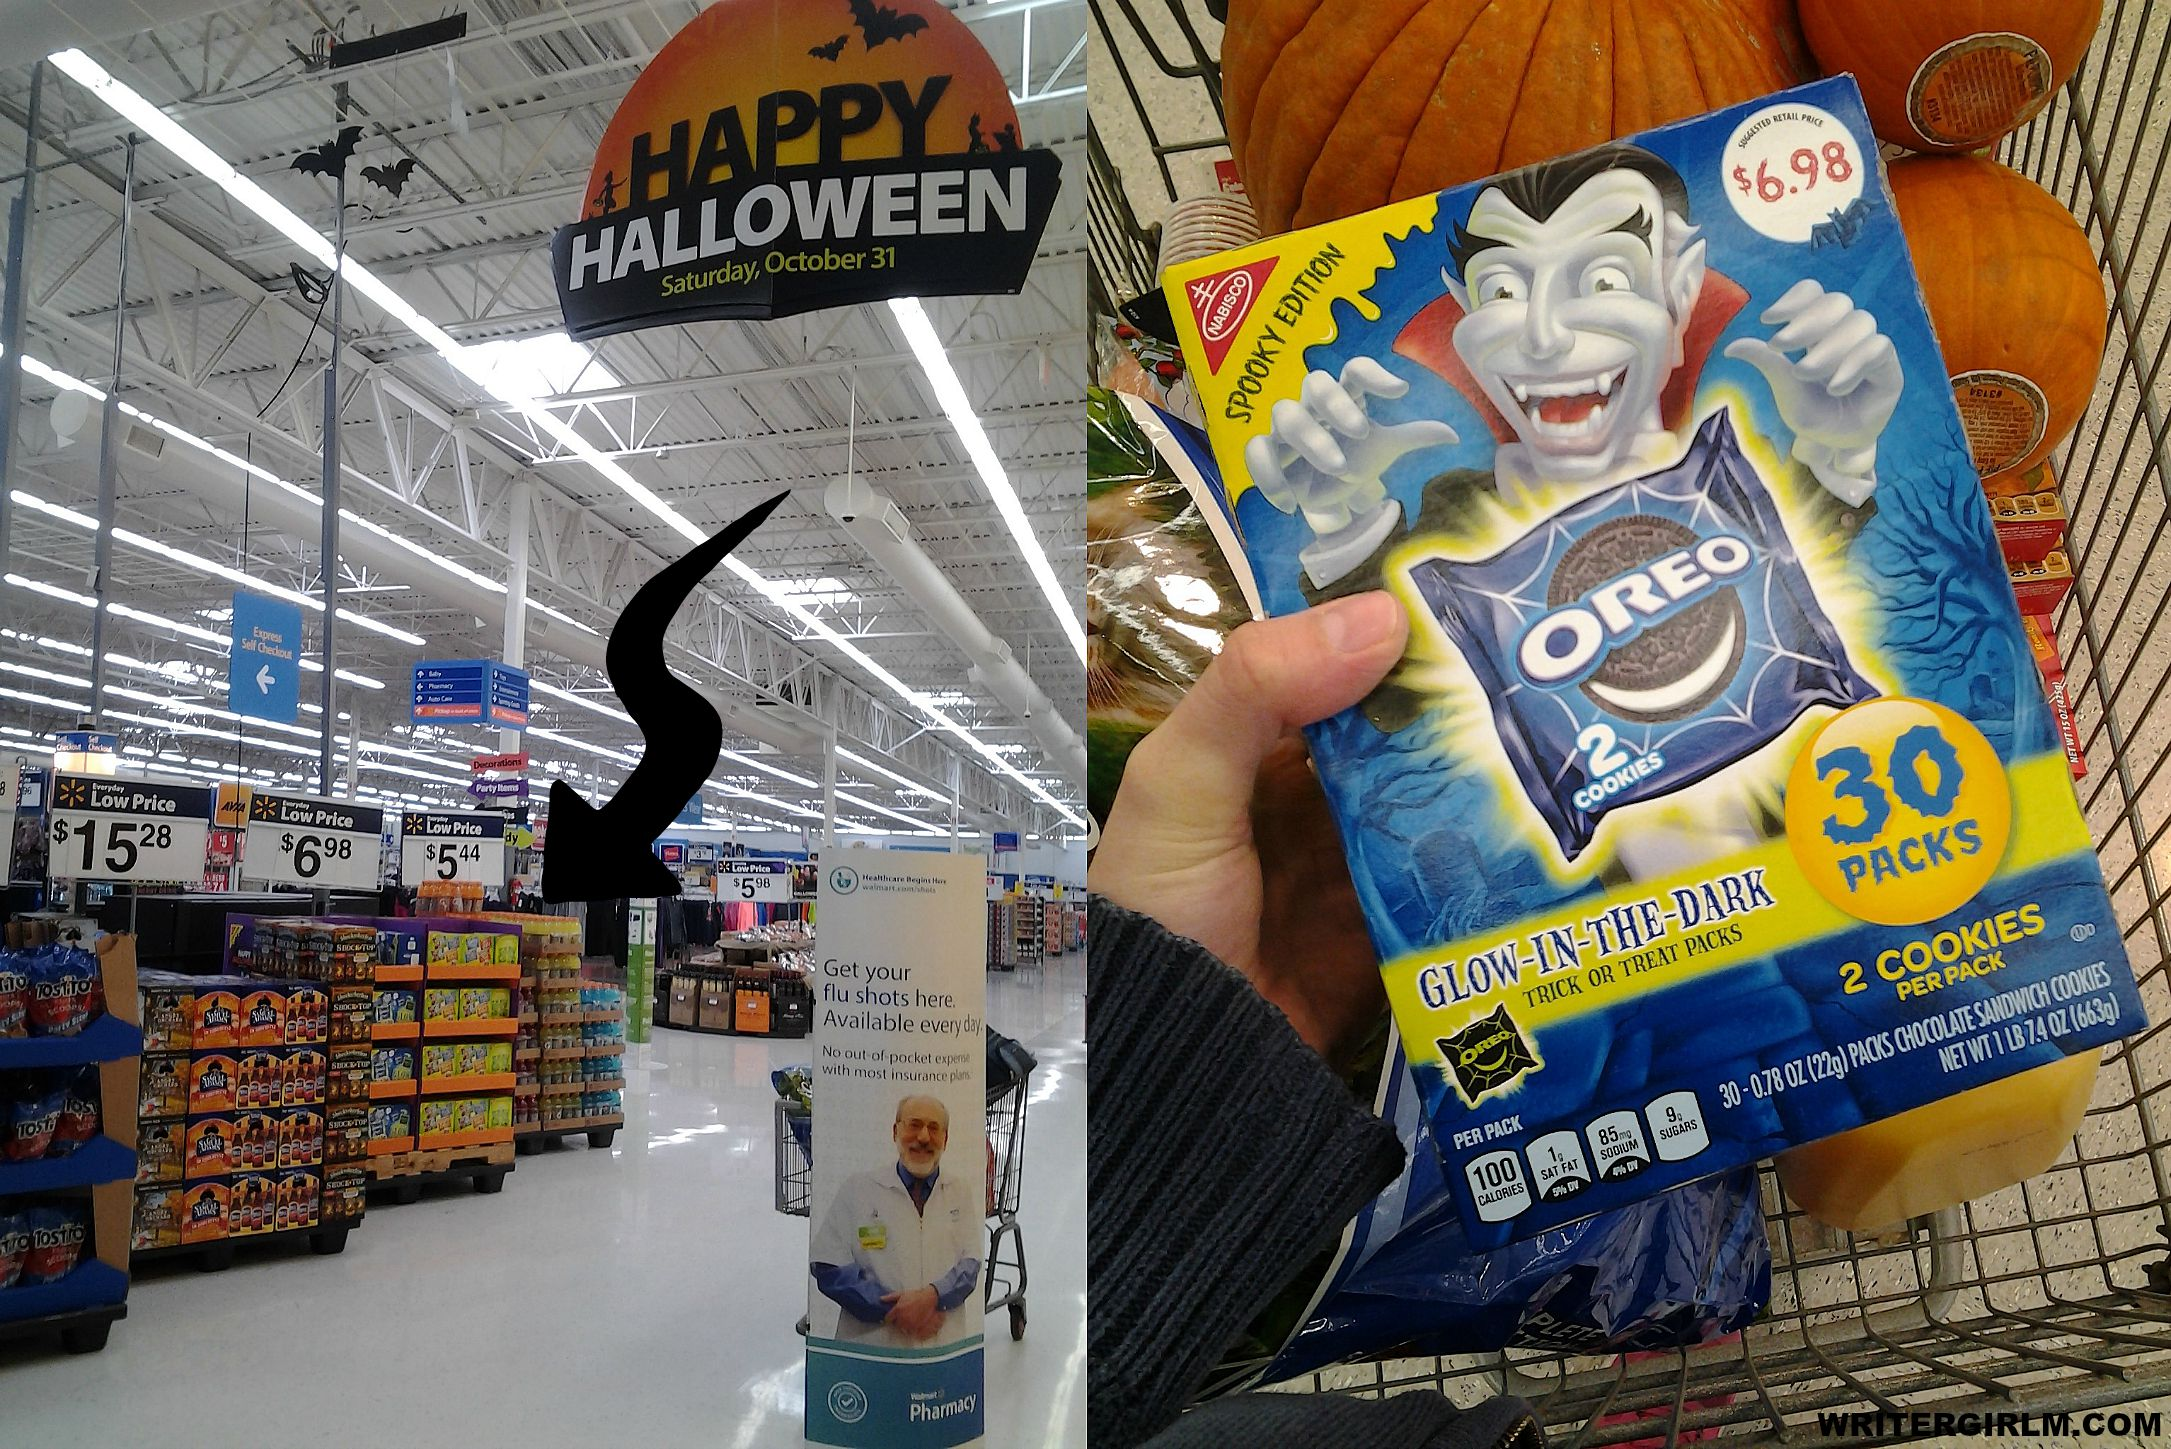 OREO cookies in glow-in-the-dark packaging are a perfect vegan-friendly trick-or-treat handout! #SpookySnacks #CollectiveBias